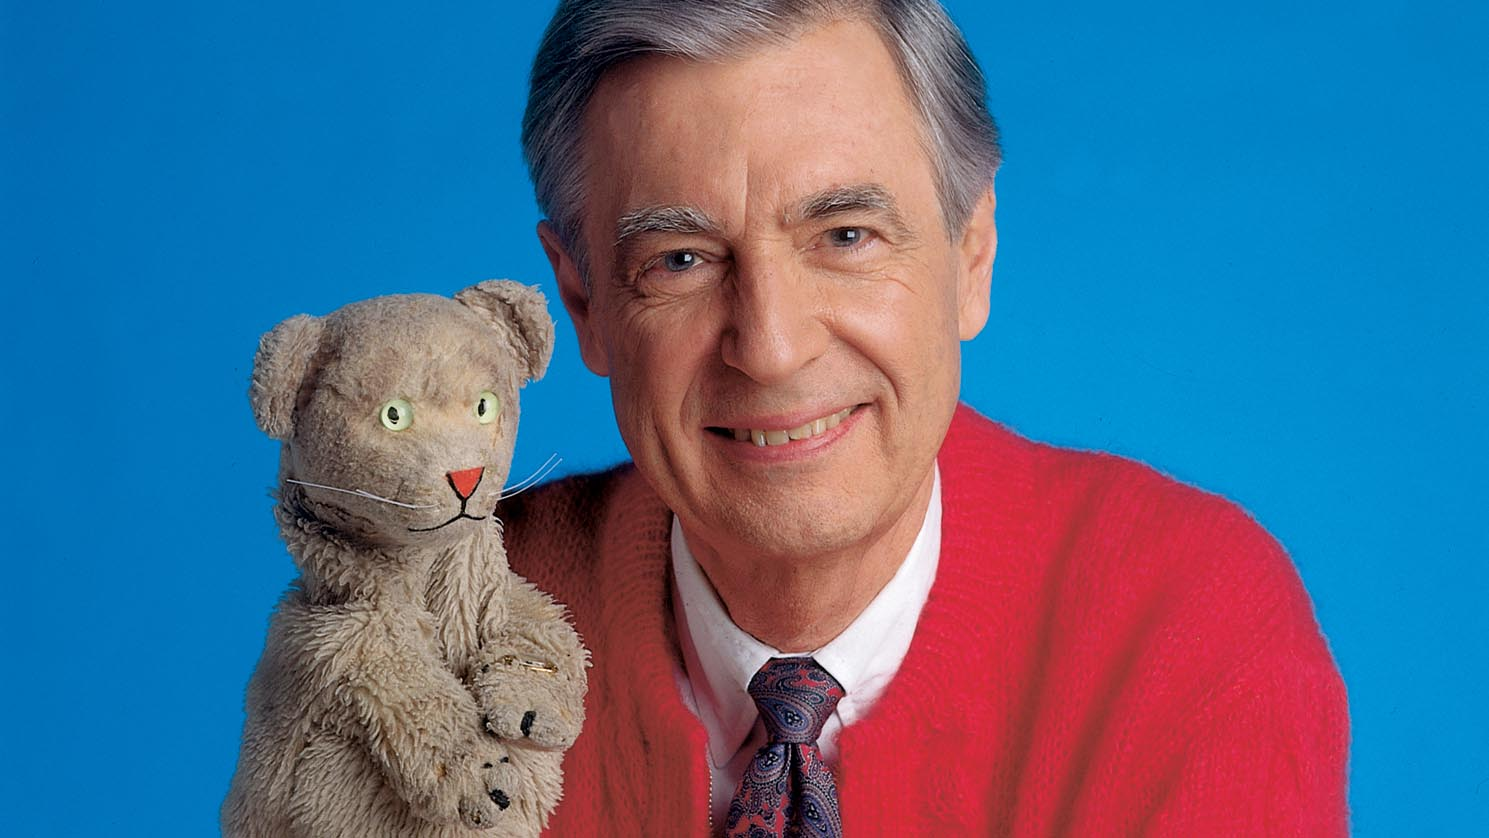 Donate to the Mister Rogers Sweater Drive in March!